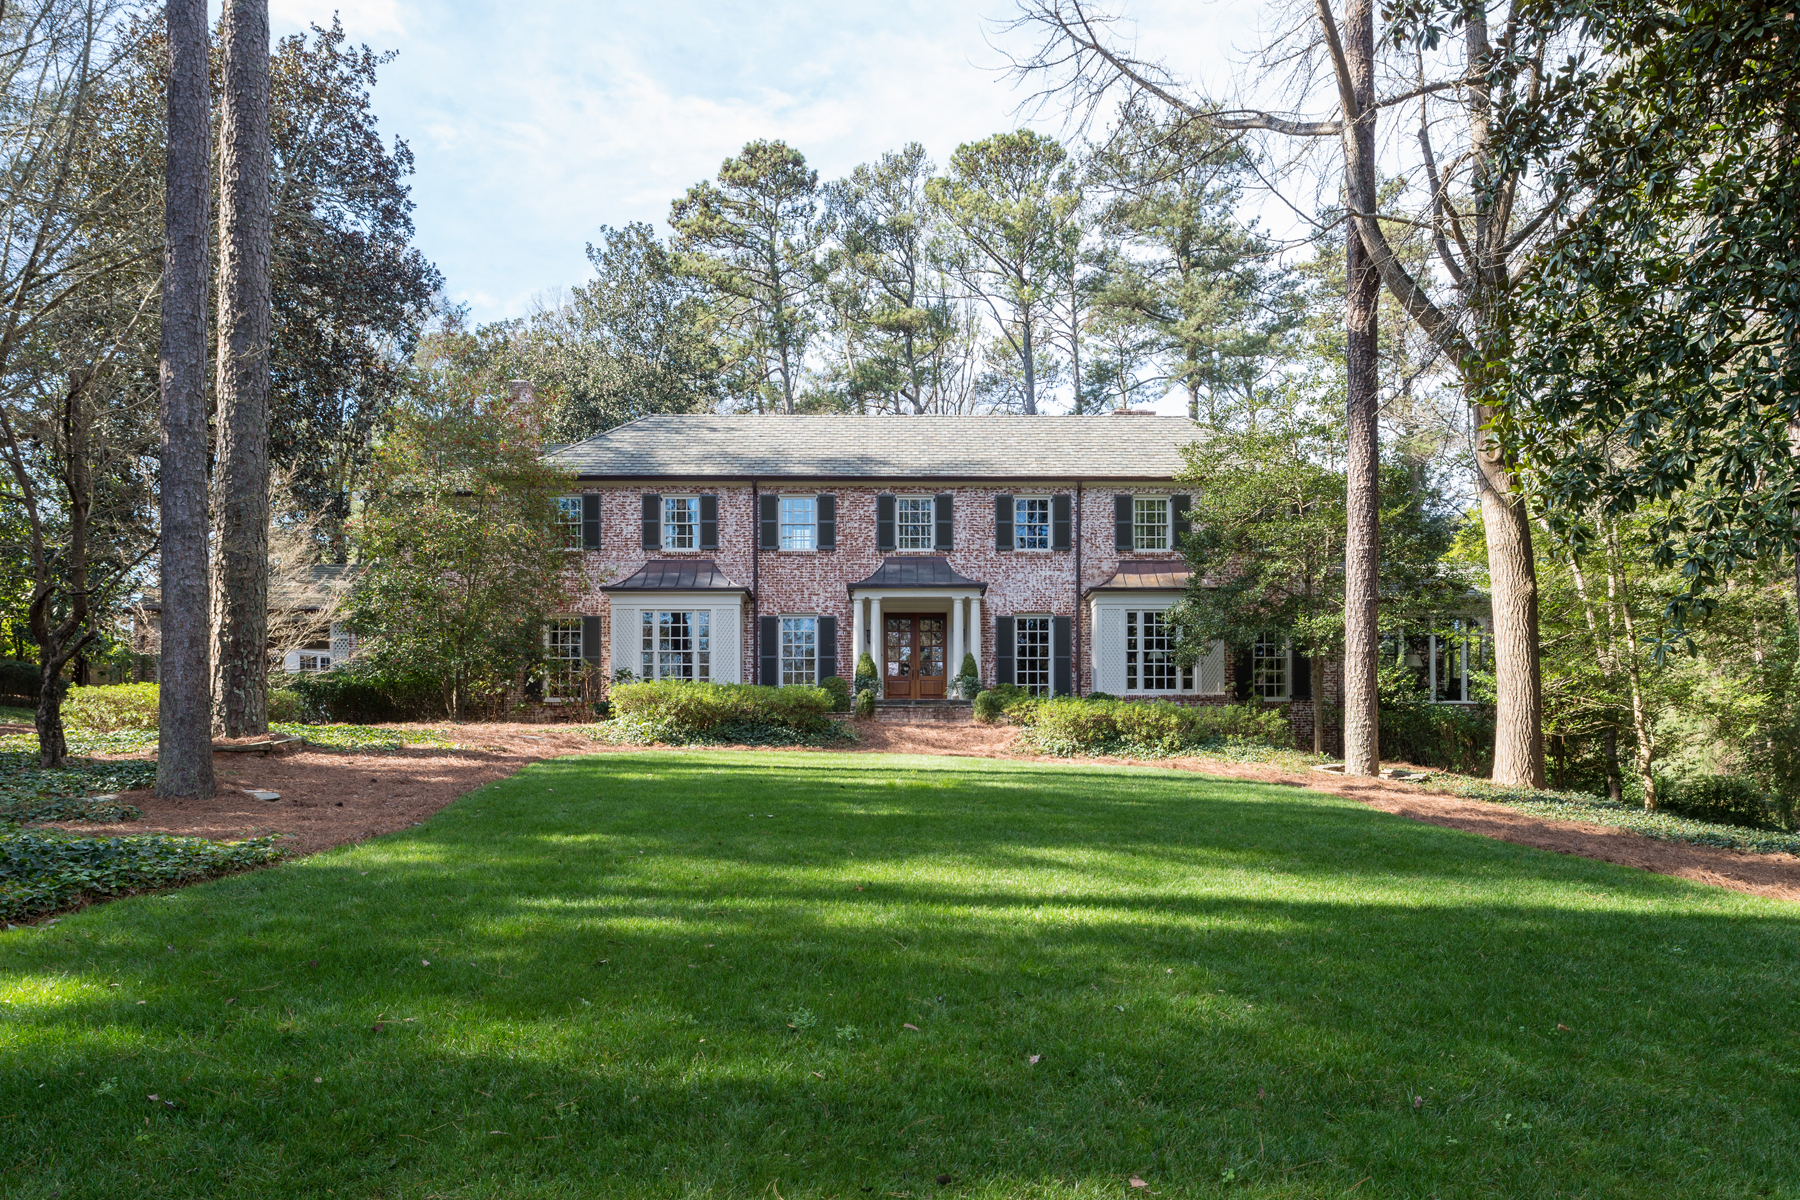 Single Family Home for Sale at Total Renovation To The Studs In Buckhead 3540 Tuxedo Road NW Tuxedo Park, Atlanta, Georgia, 30305 United States